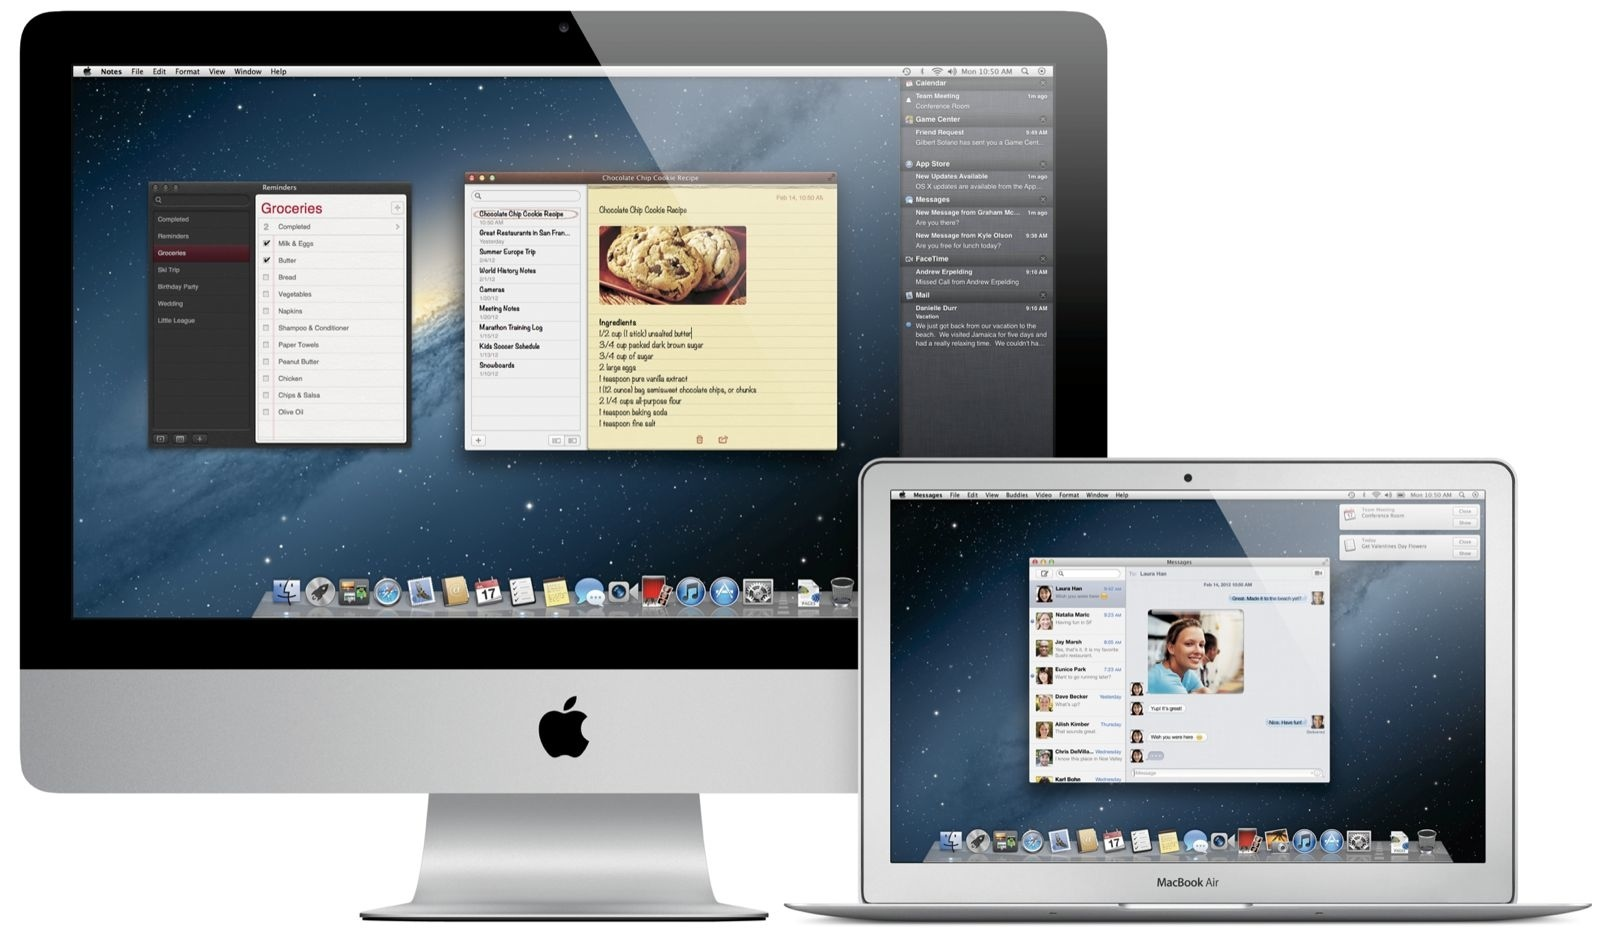 Mac OS X - Mountain Lion